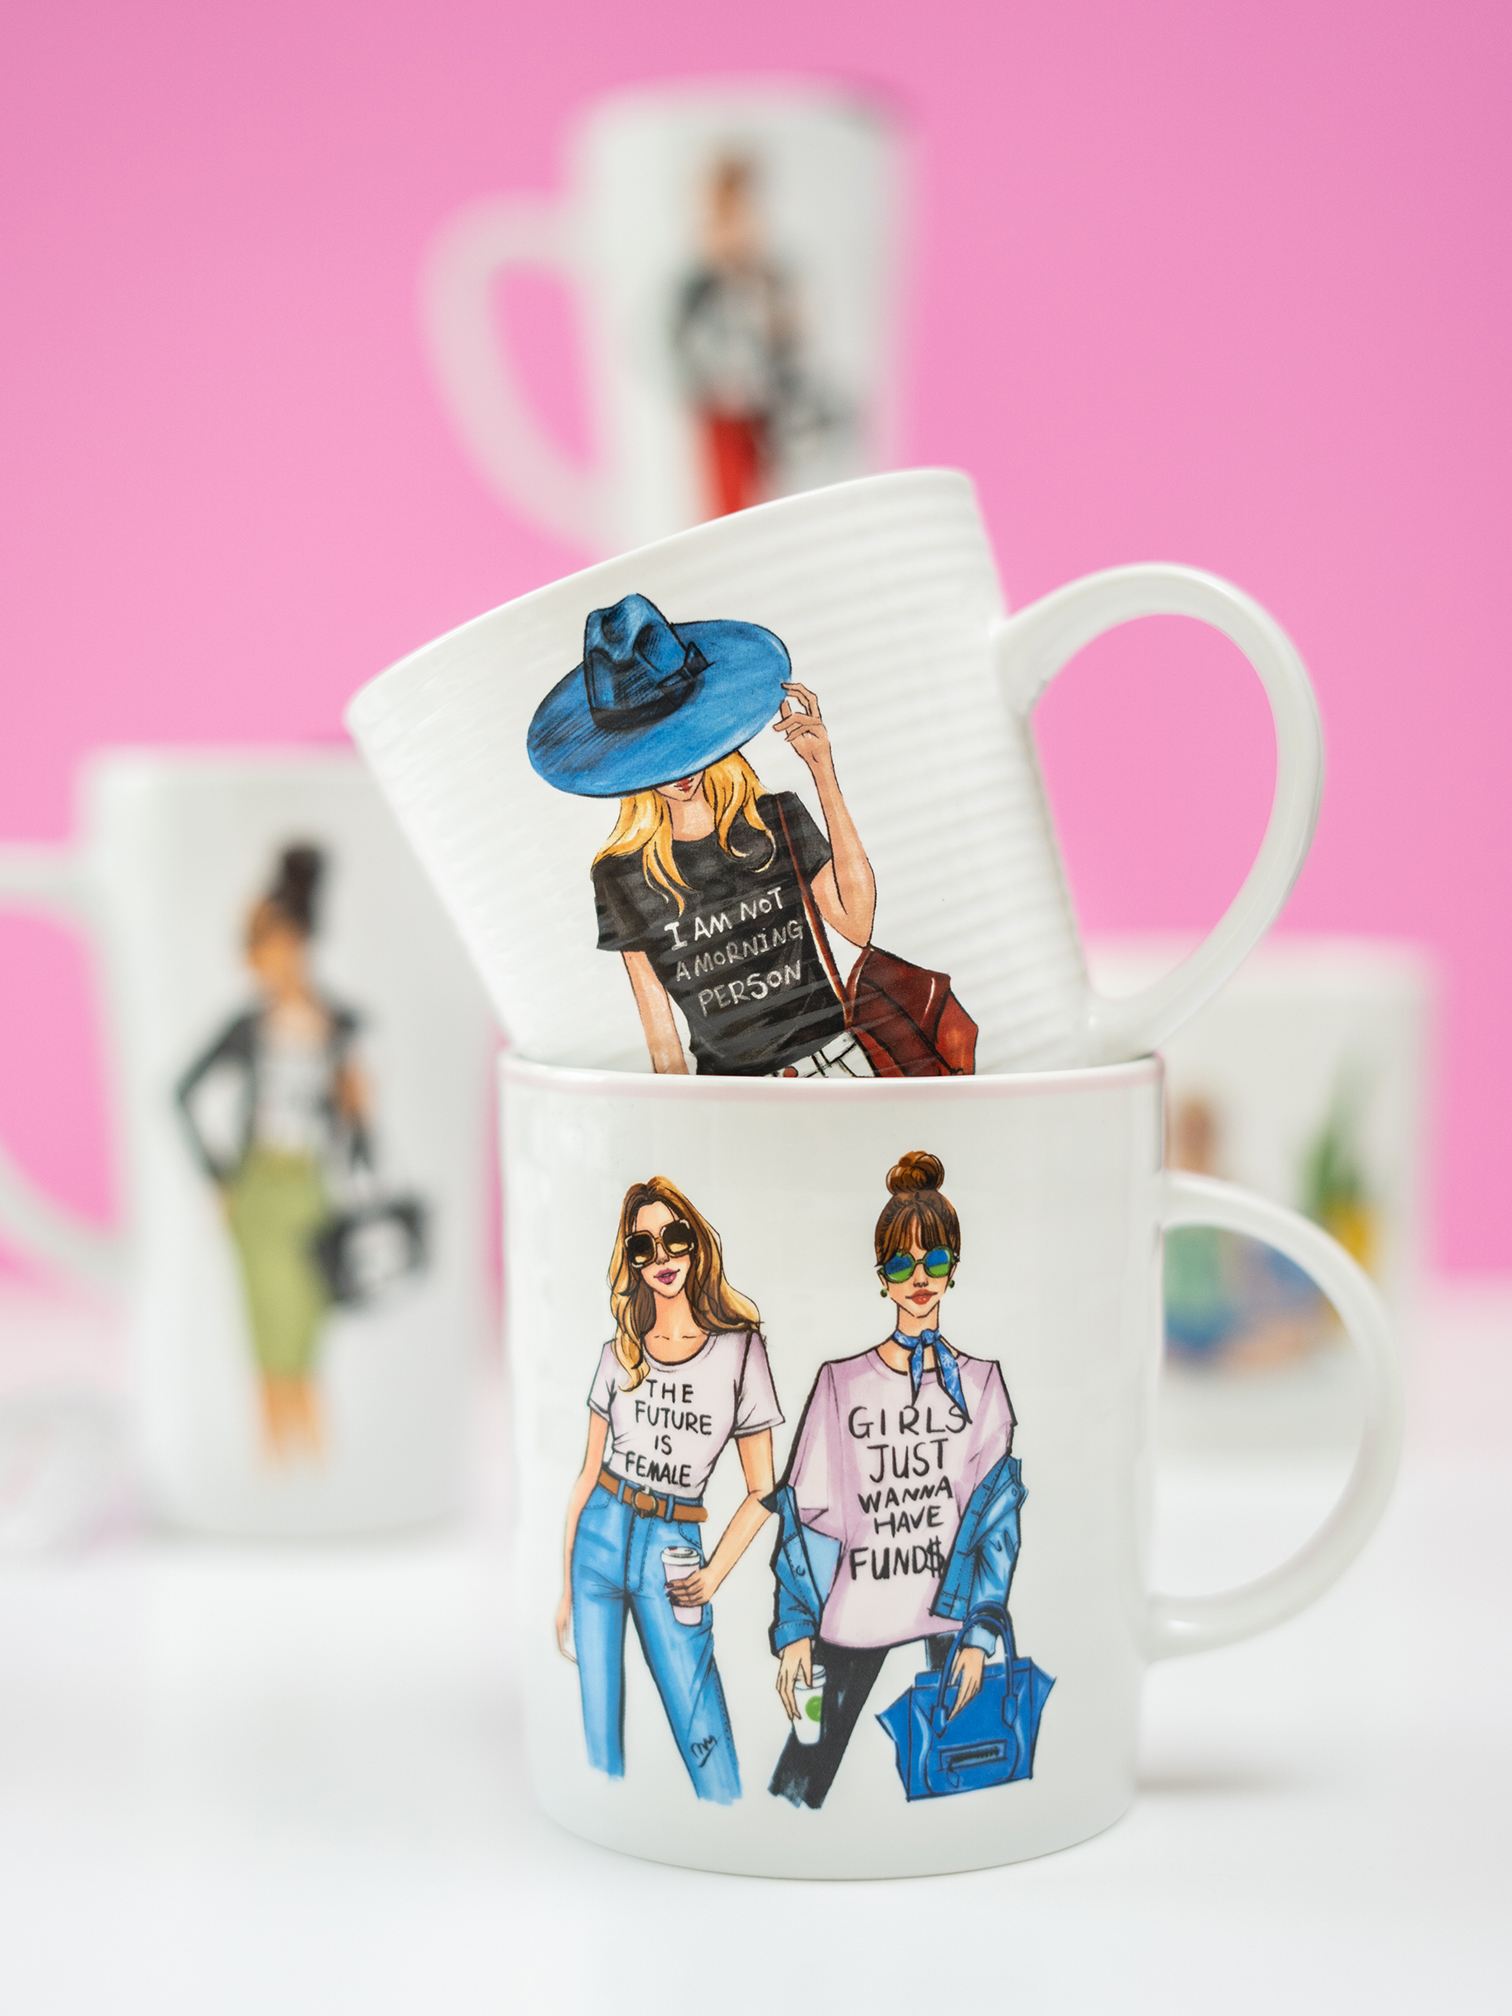 fashion illustrated fashion coffee mugs for licensing by rongrong devoe.jpg